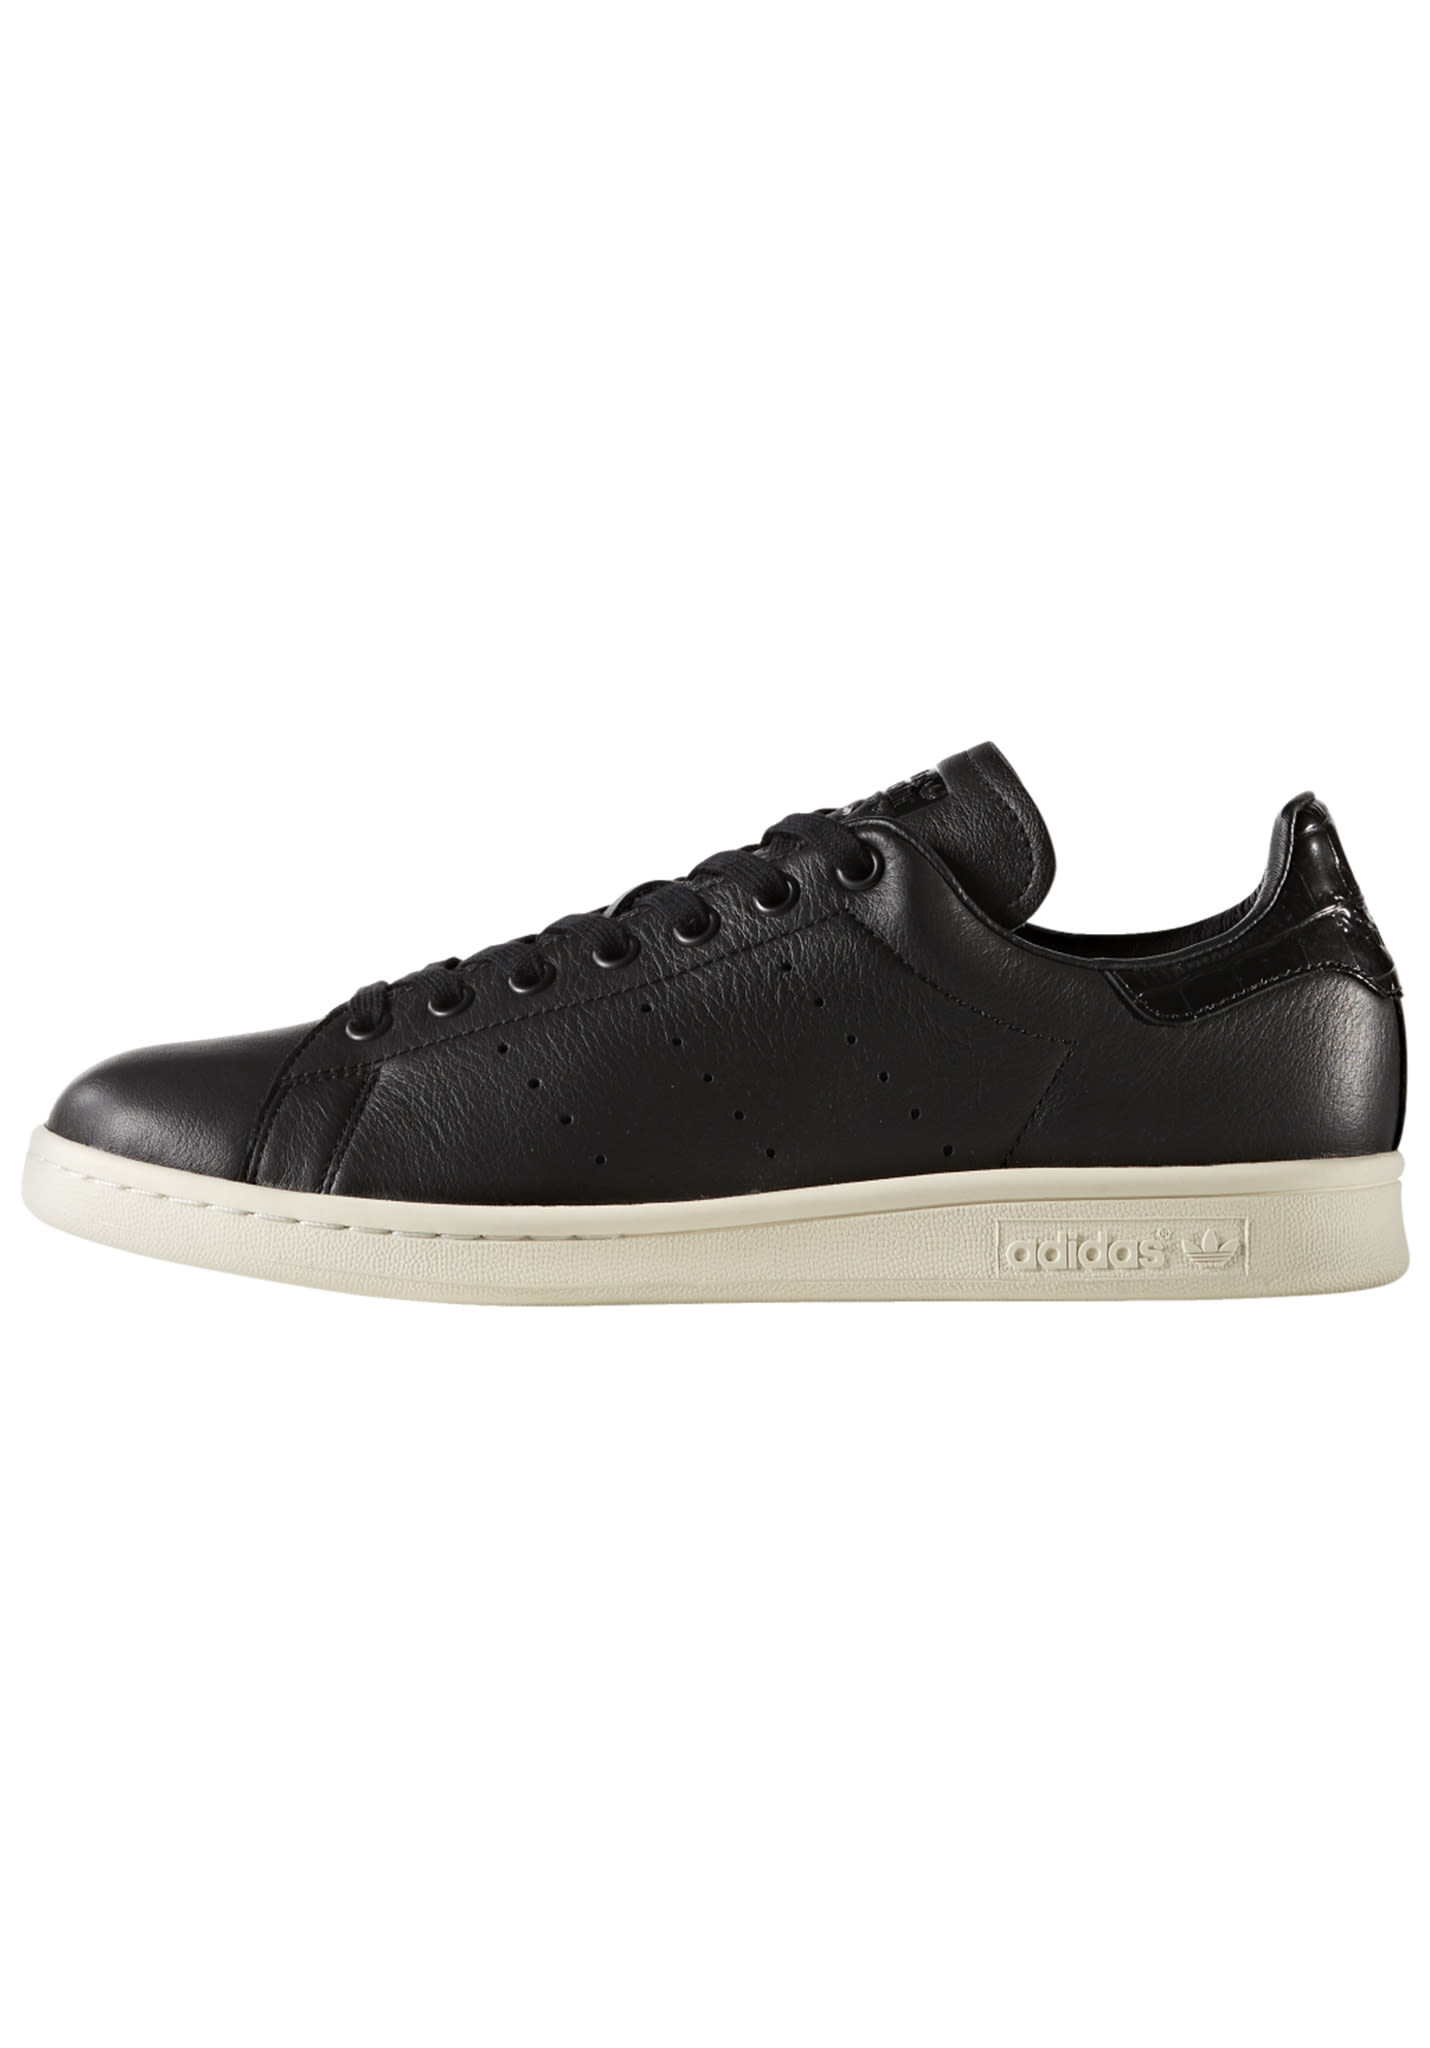 finest selection 474df 653a4 ADIDAS ORIGINALS Stan Smith - Sneakers for Men - Black - Planet Sports